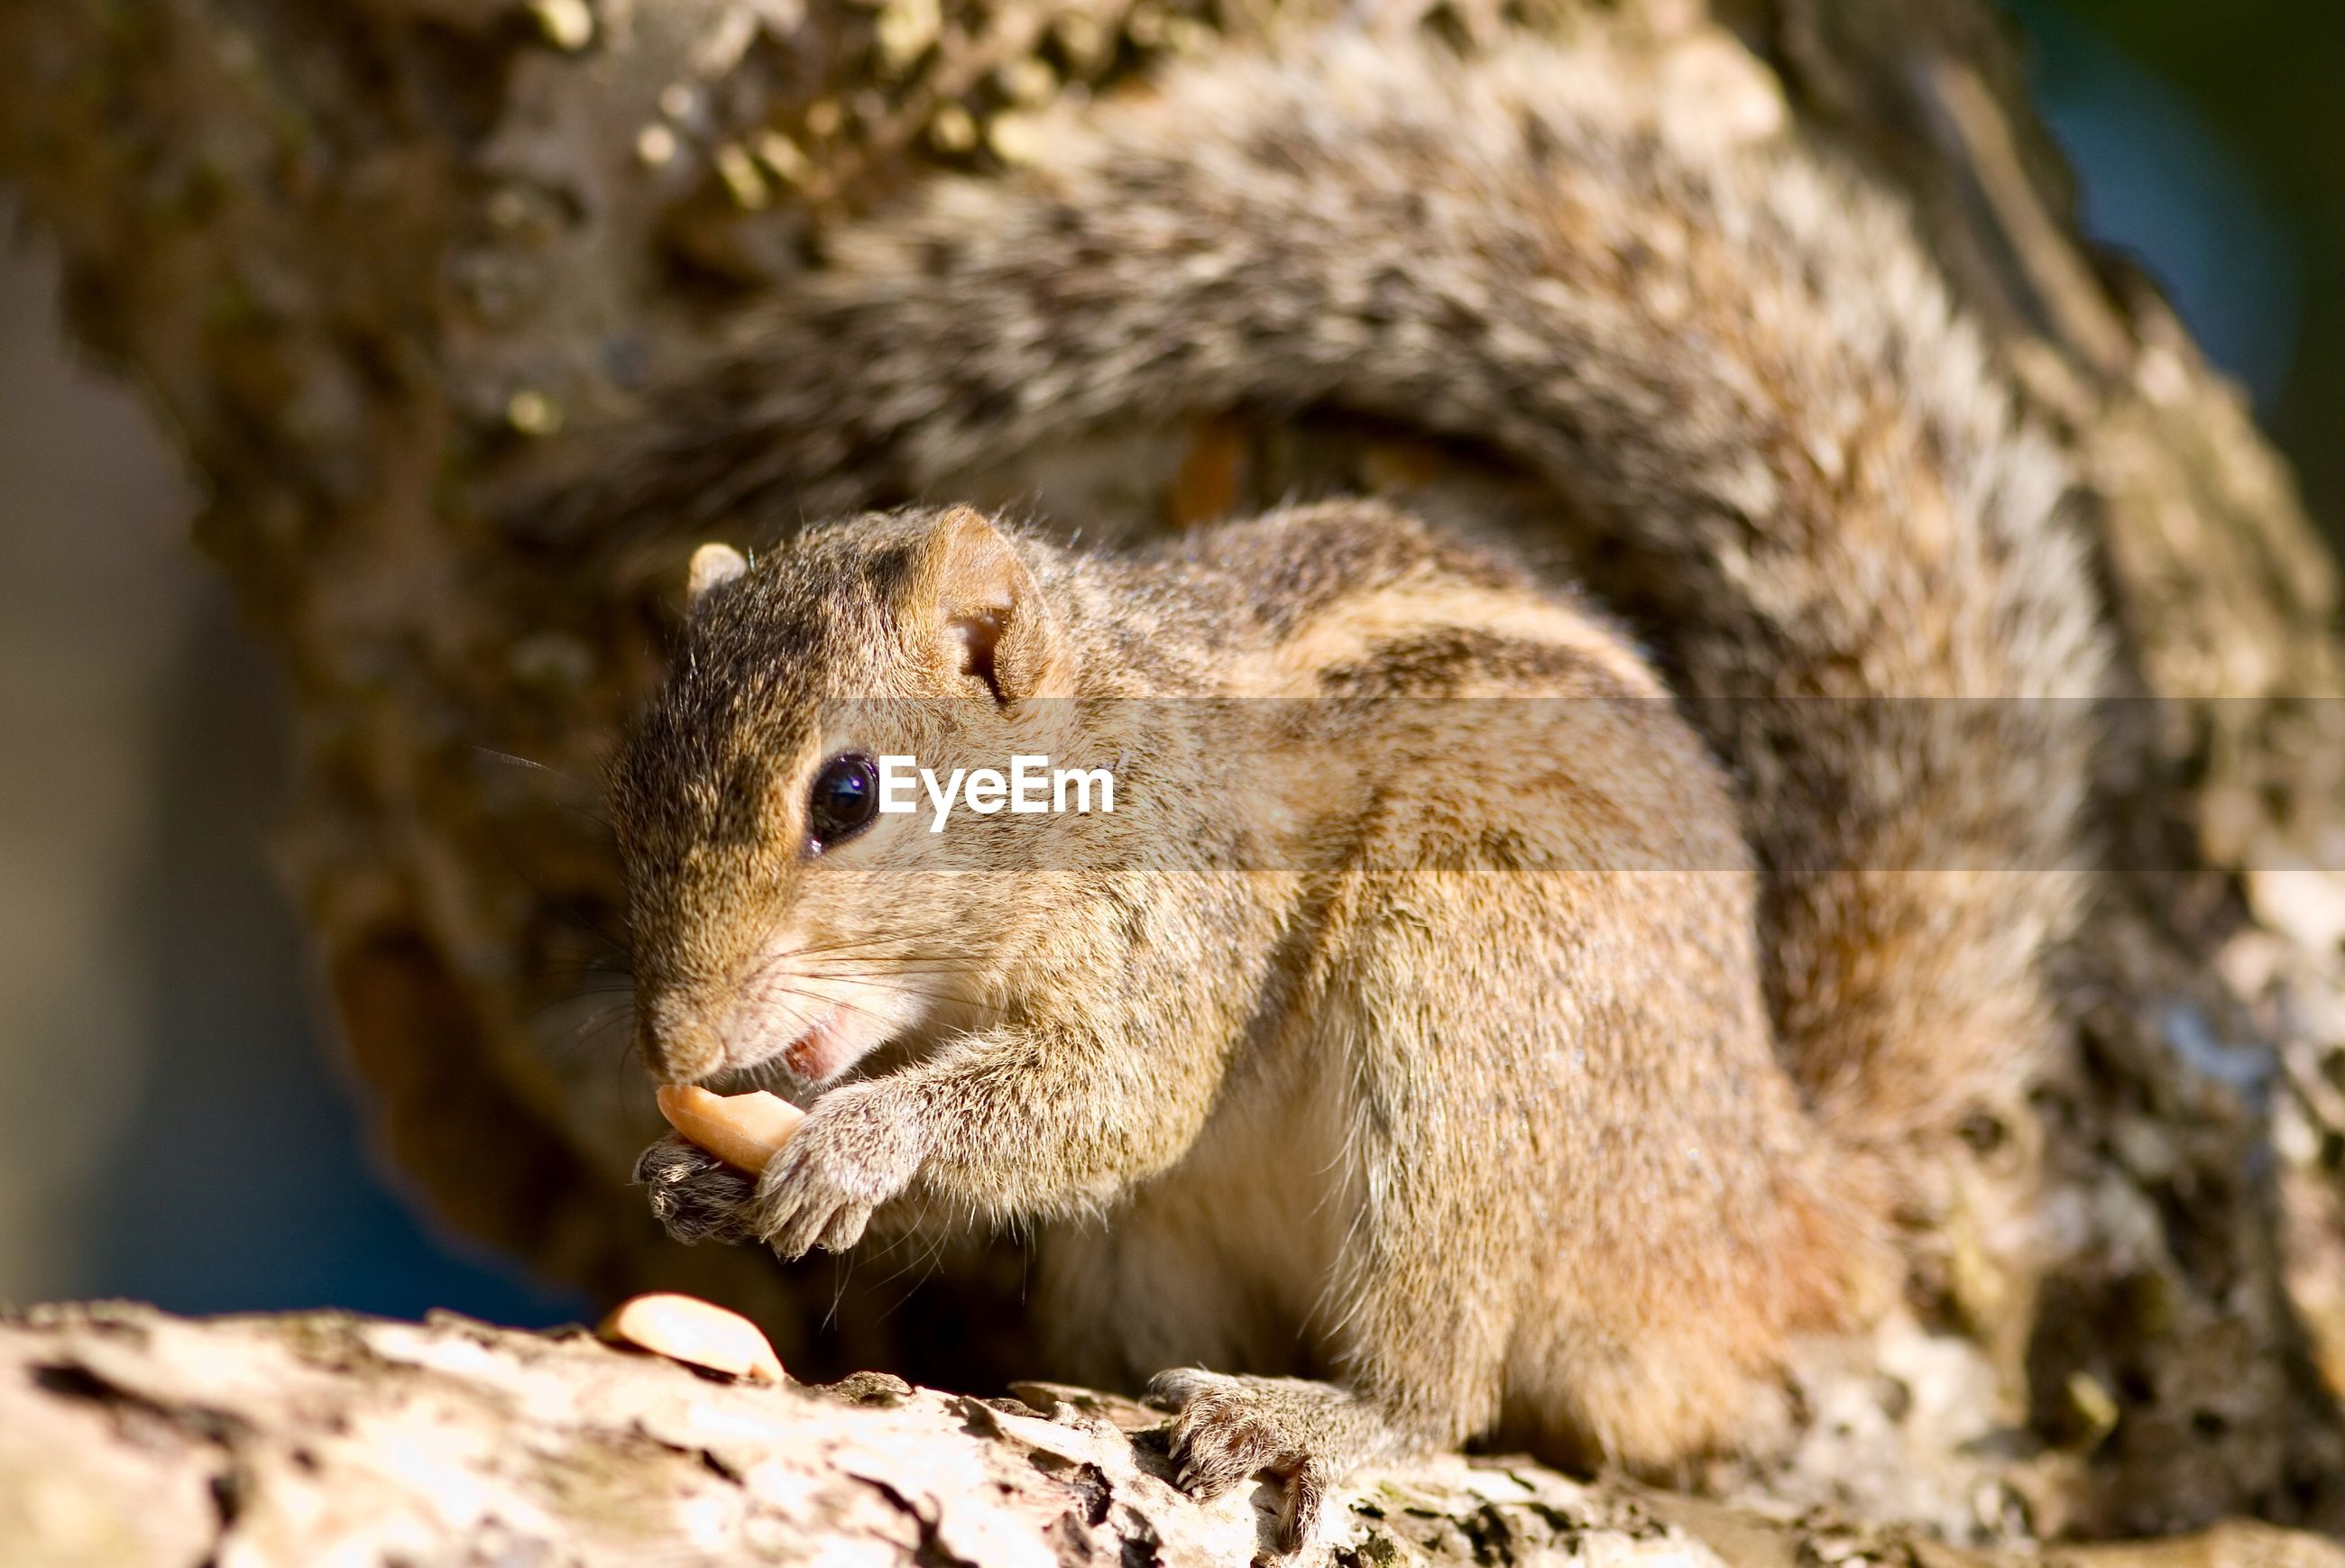 CLOSE-UP OF SQUIRREL EATING ROCK